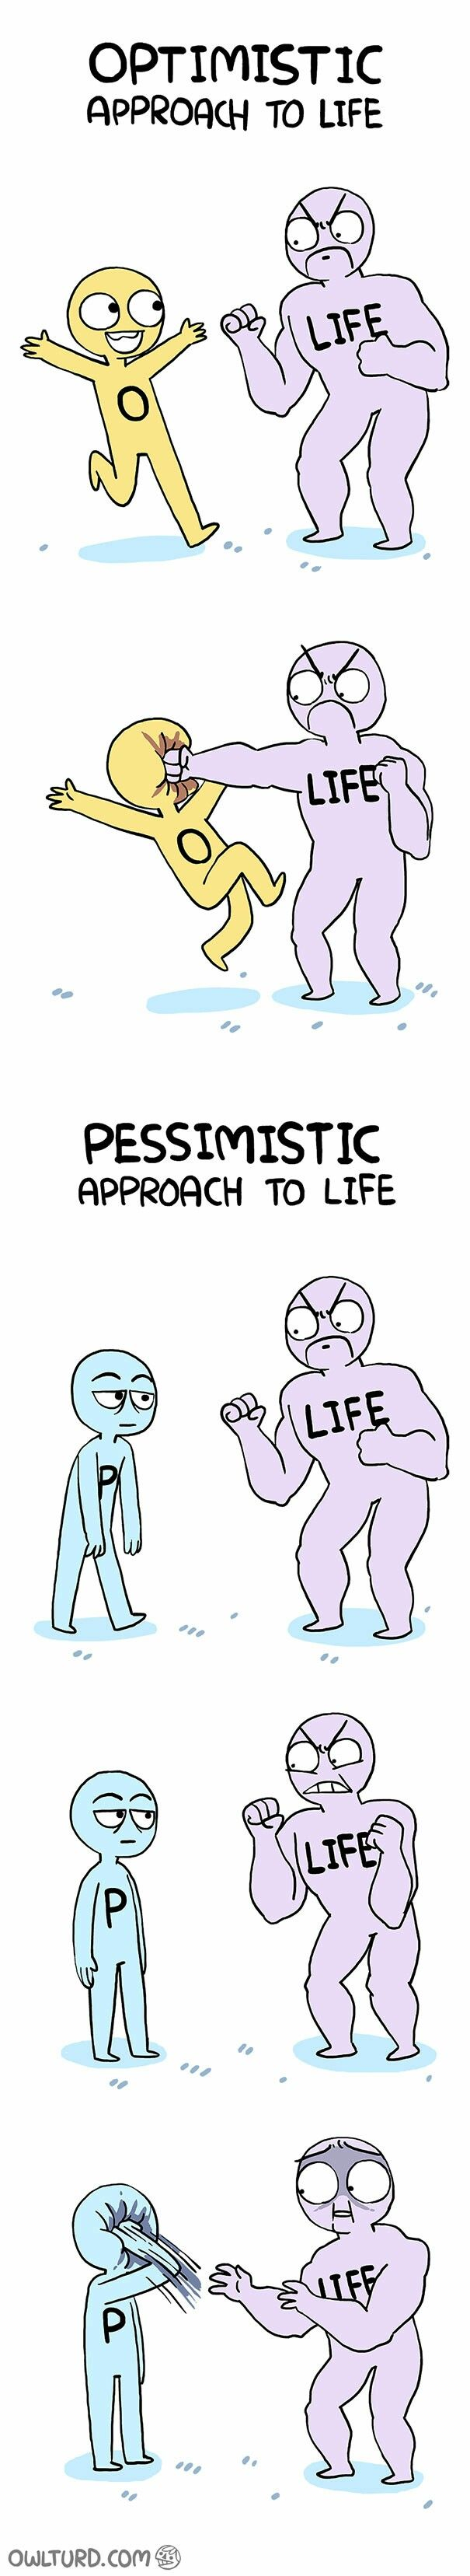 Optimism vs. Pessimism